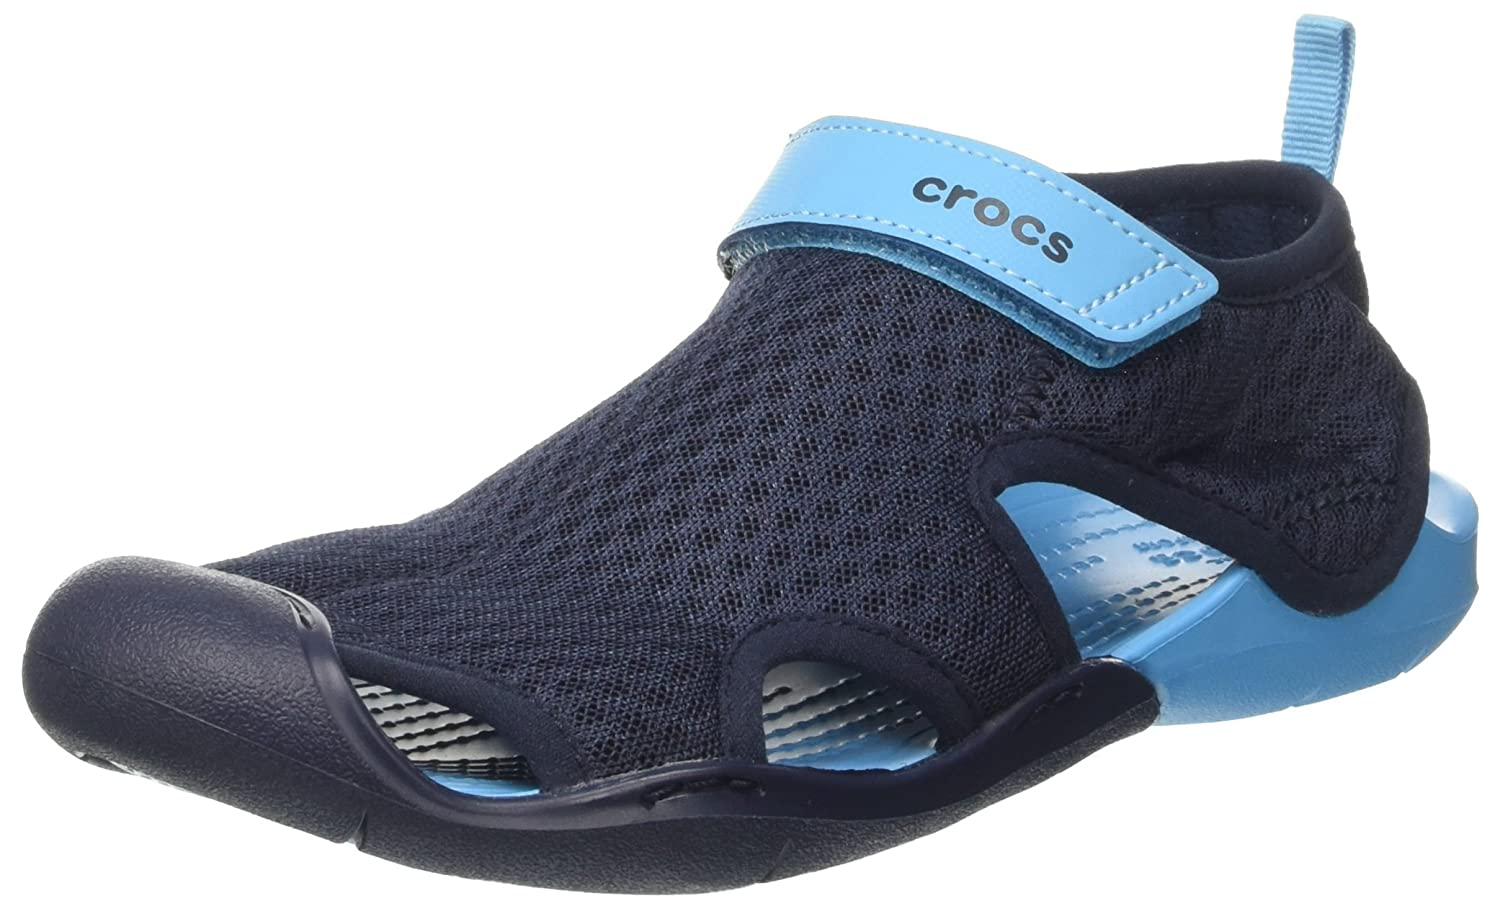 Crocs Women's Swiftwater Mesh Sandal B01H736PXS 11 B(M) US|Navy